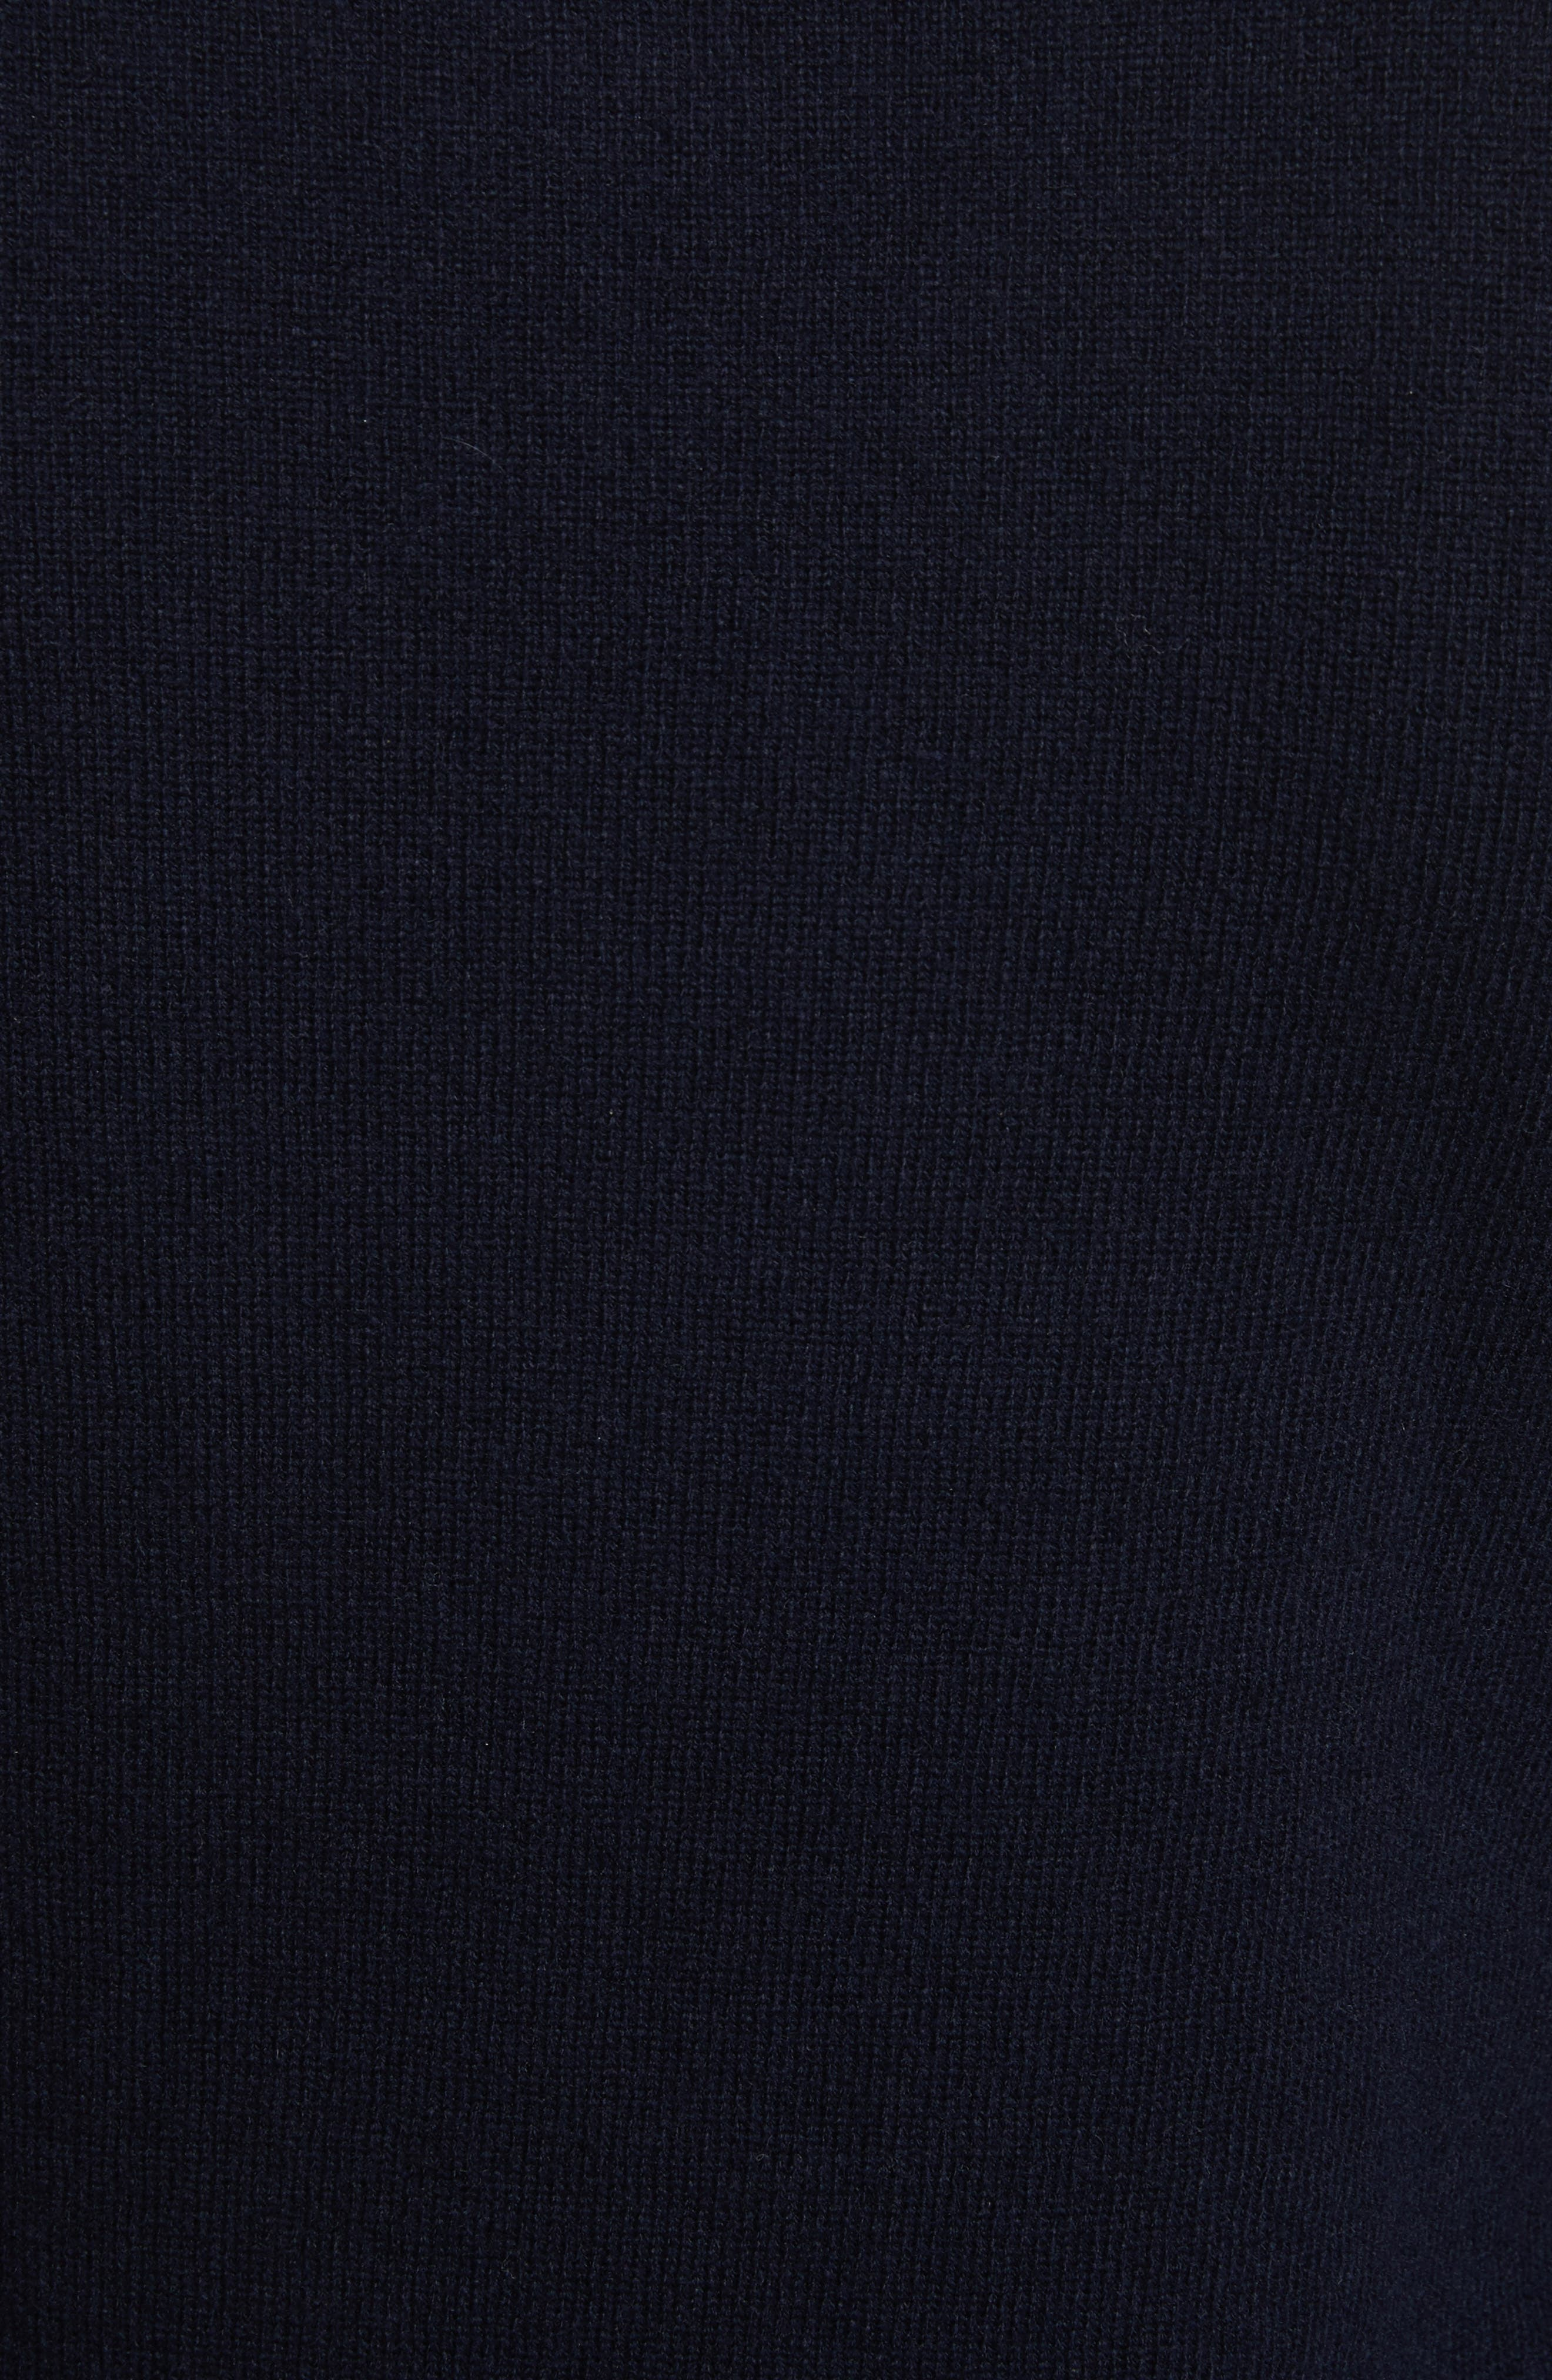 Comme des Garçons PLAY Wool Sweater,                             Alternate thumbnail 5, color,                             NAVY